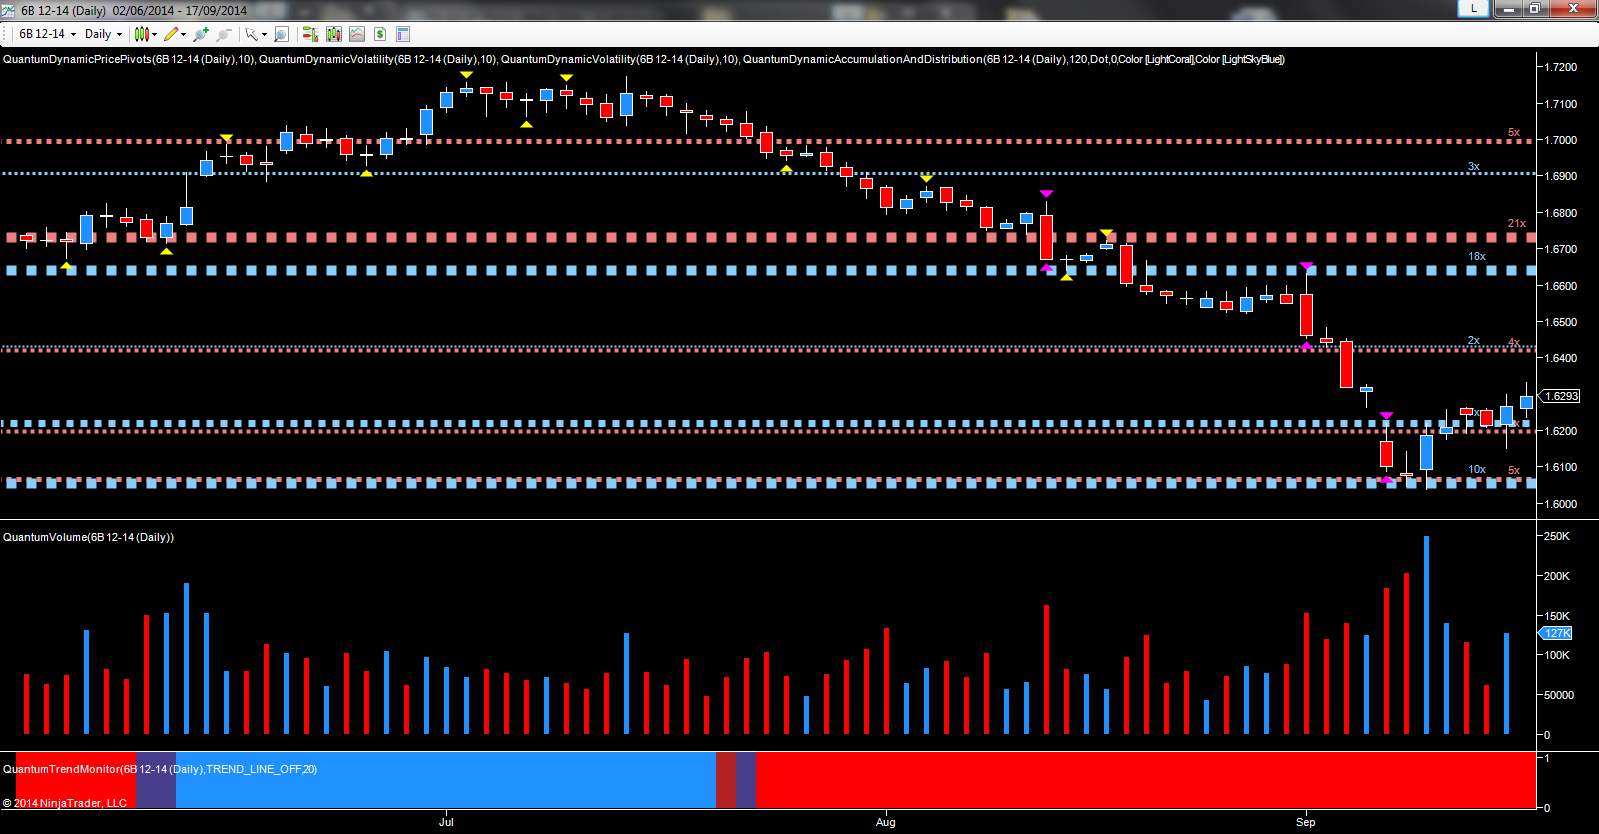 GBP/USD - December futures daily chart